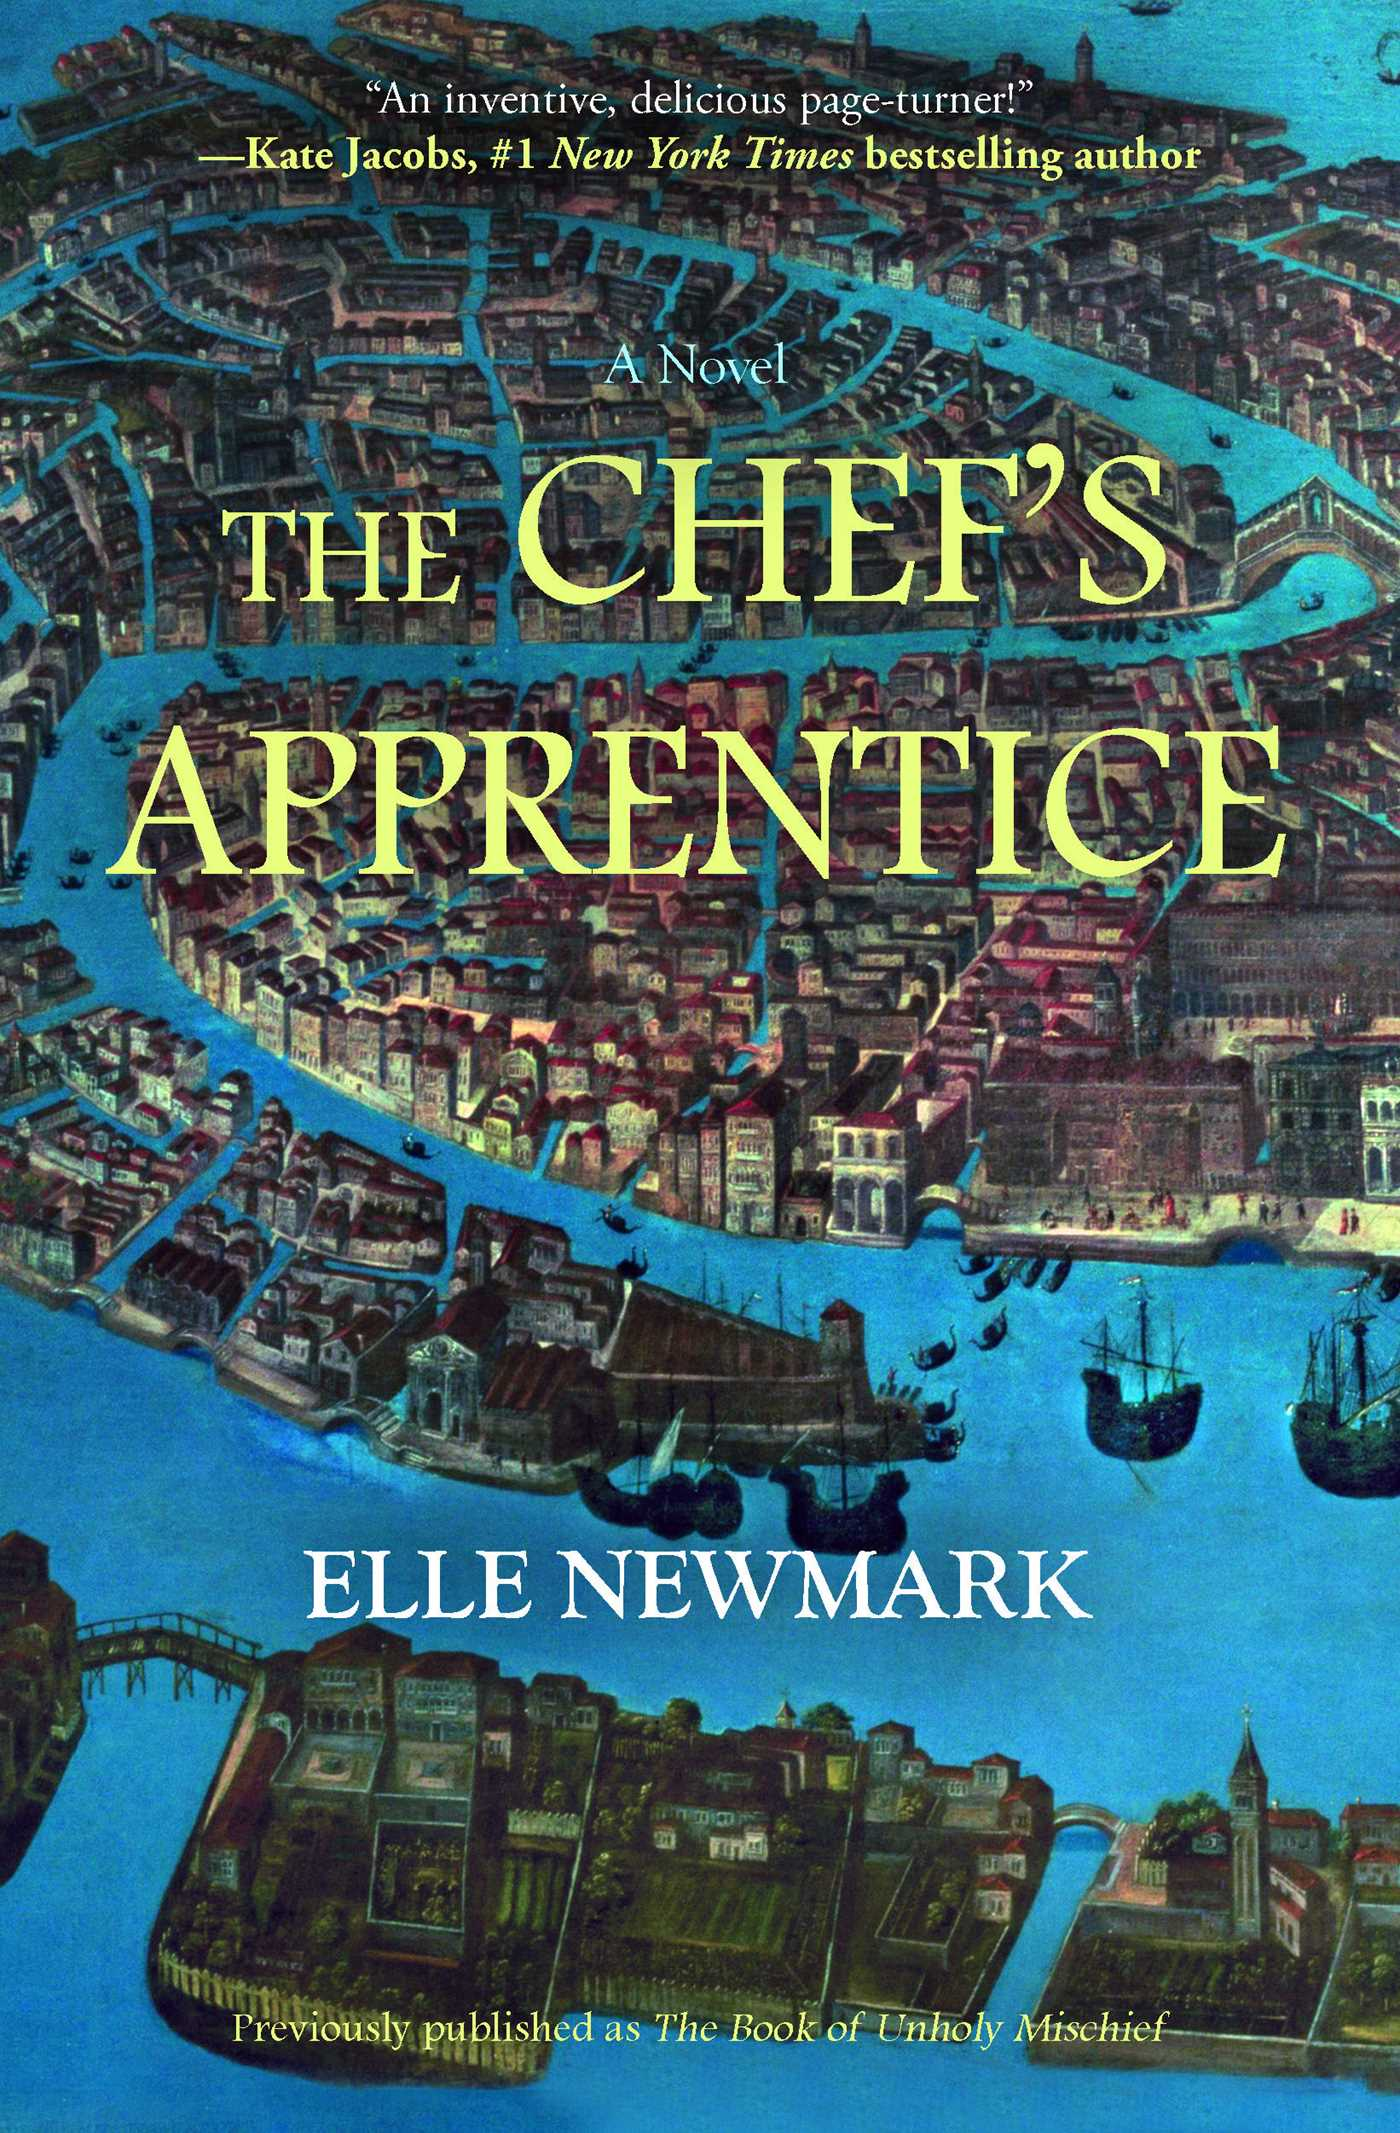 The chefs apprentice 9781416597926 hr